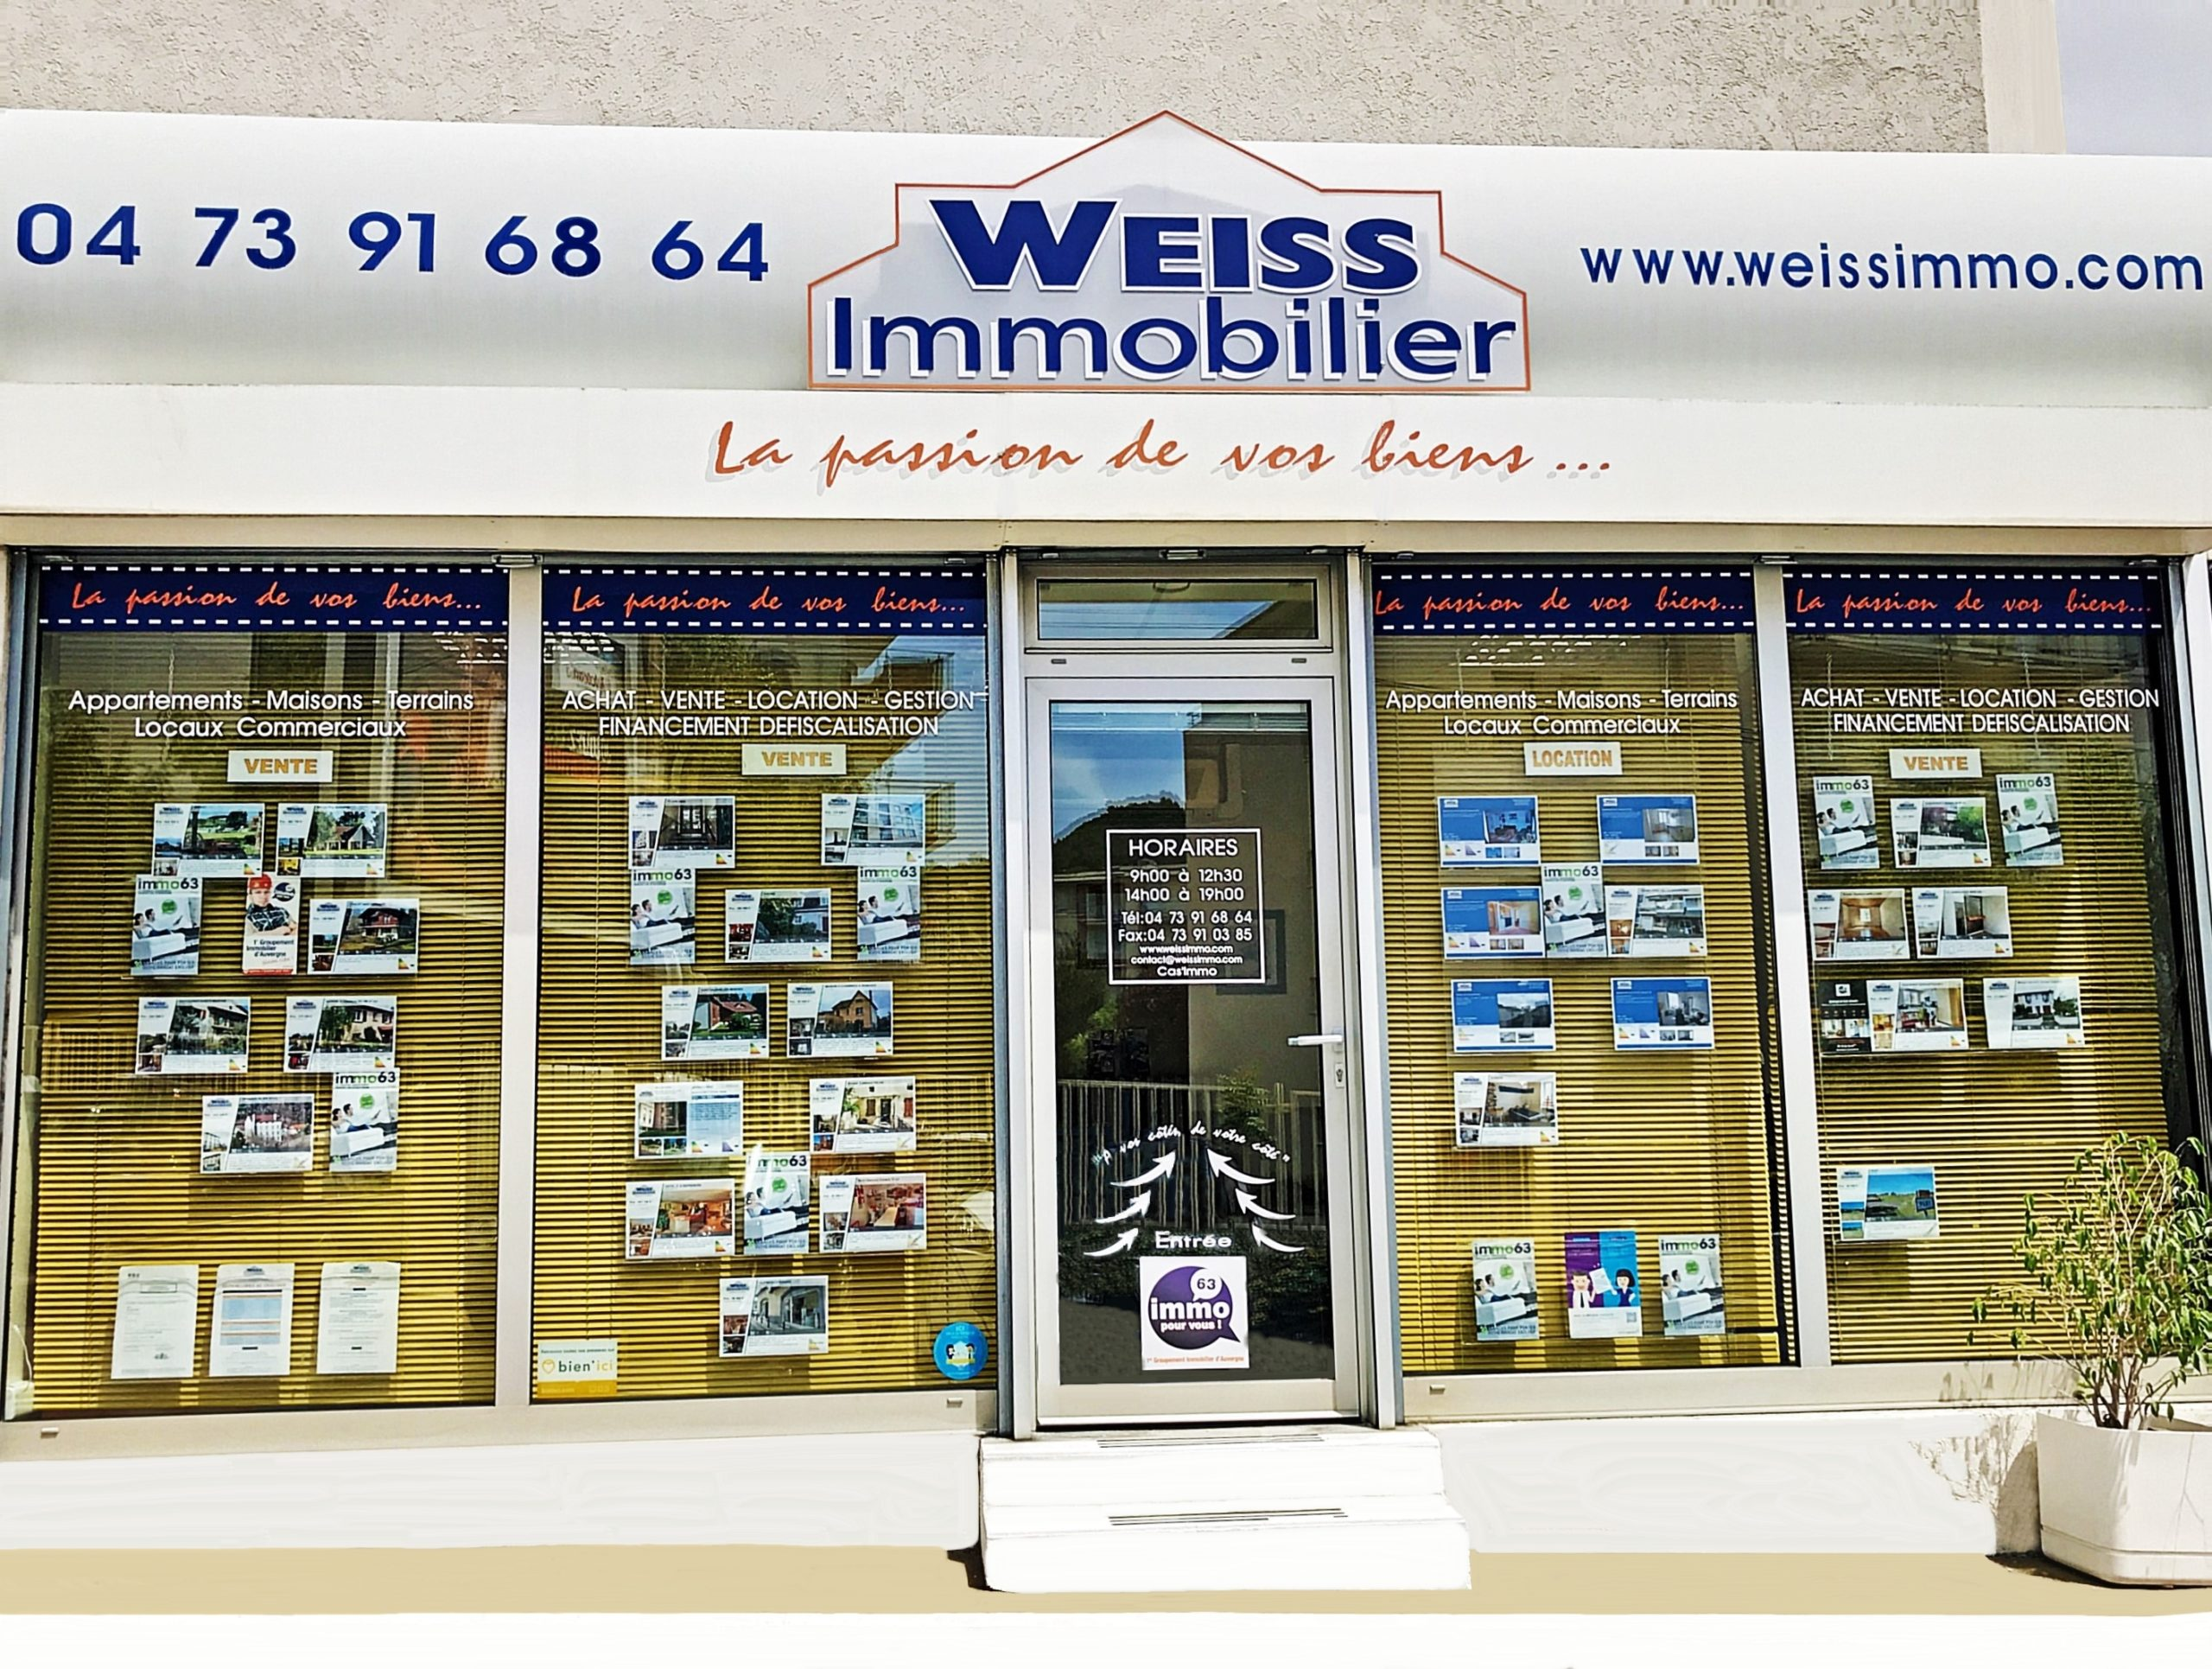 WEISS IMMOBILIER